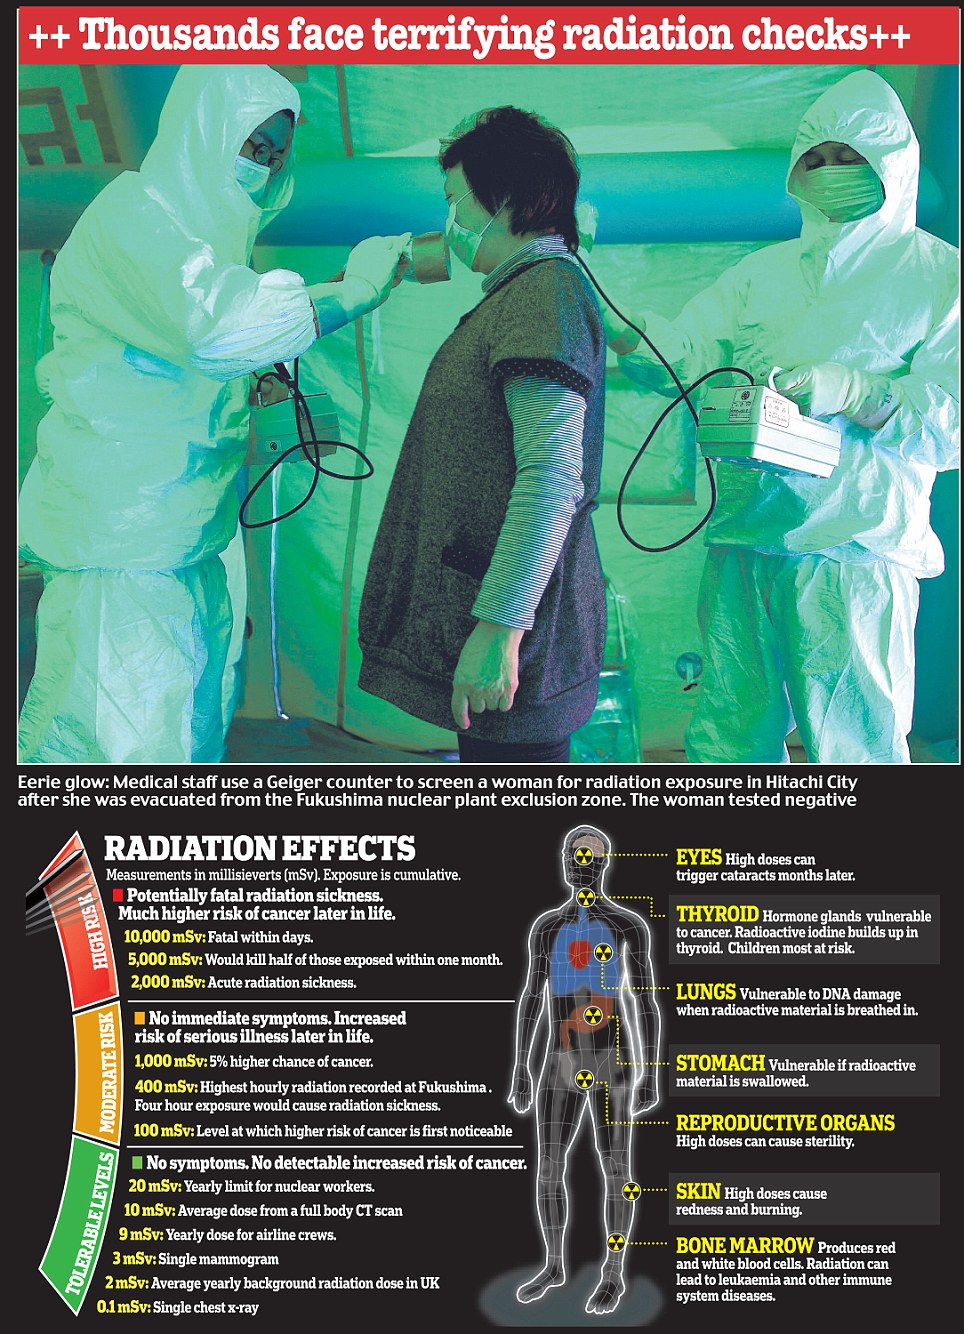 Thousands face terrifying radiation checks